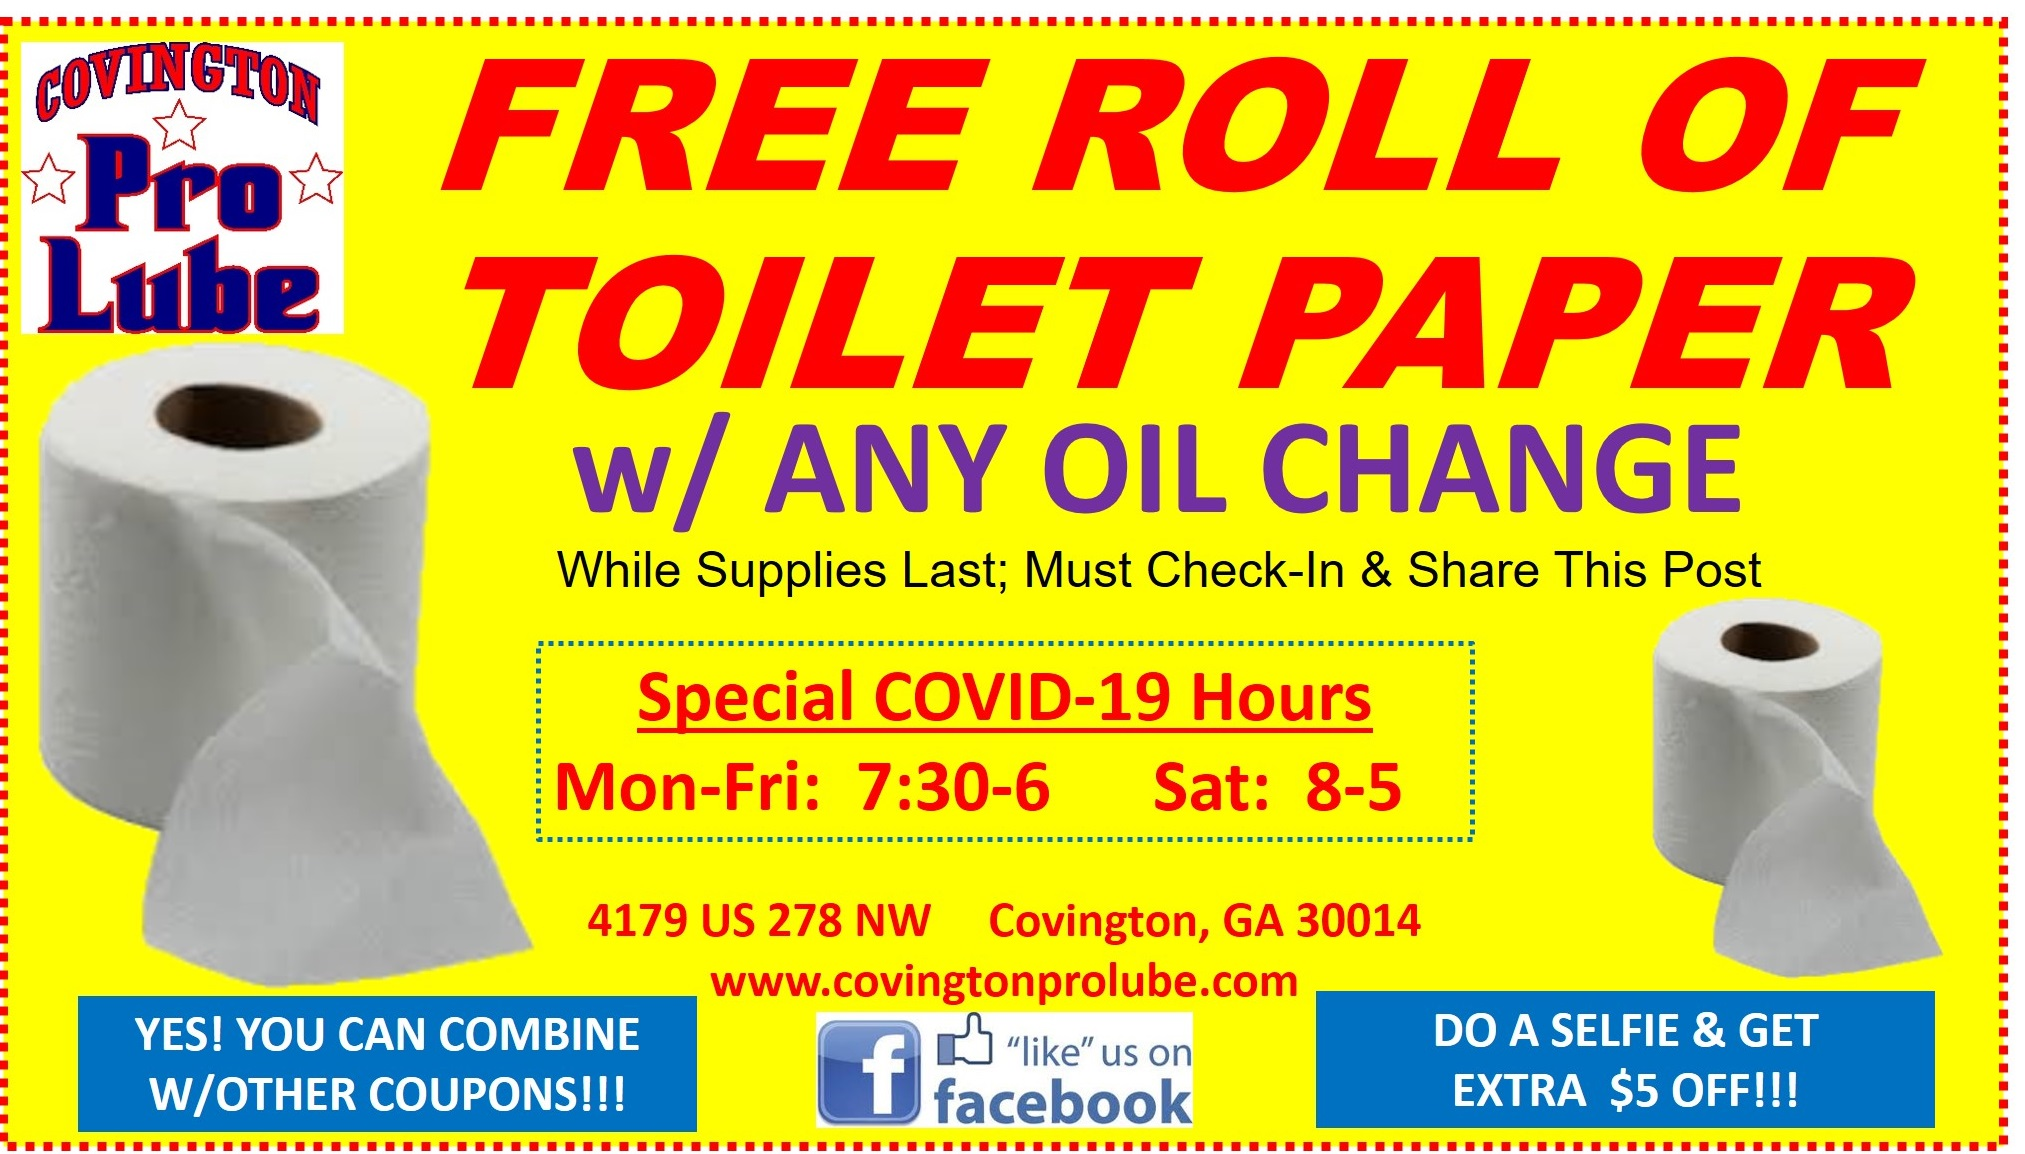 Deal of the day %28cpl%29 %28toilet paper%29